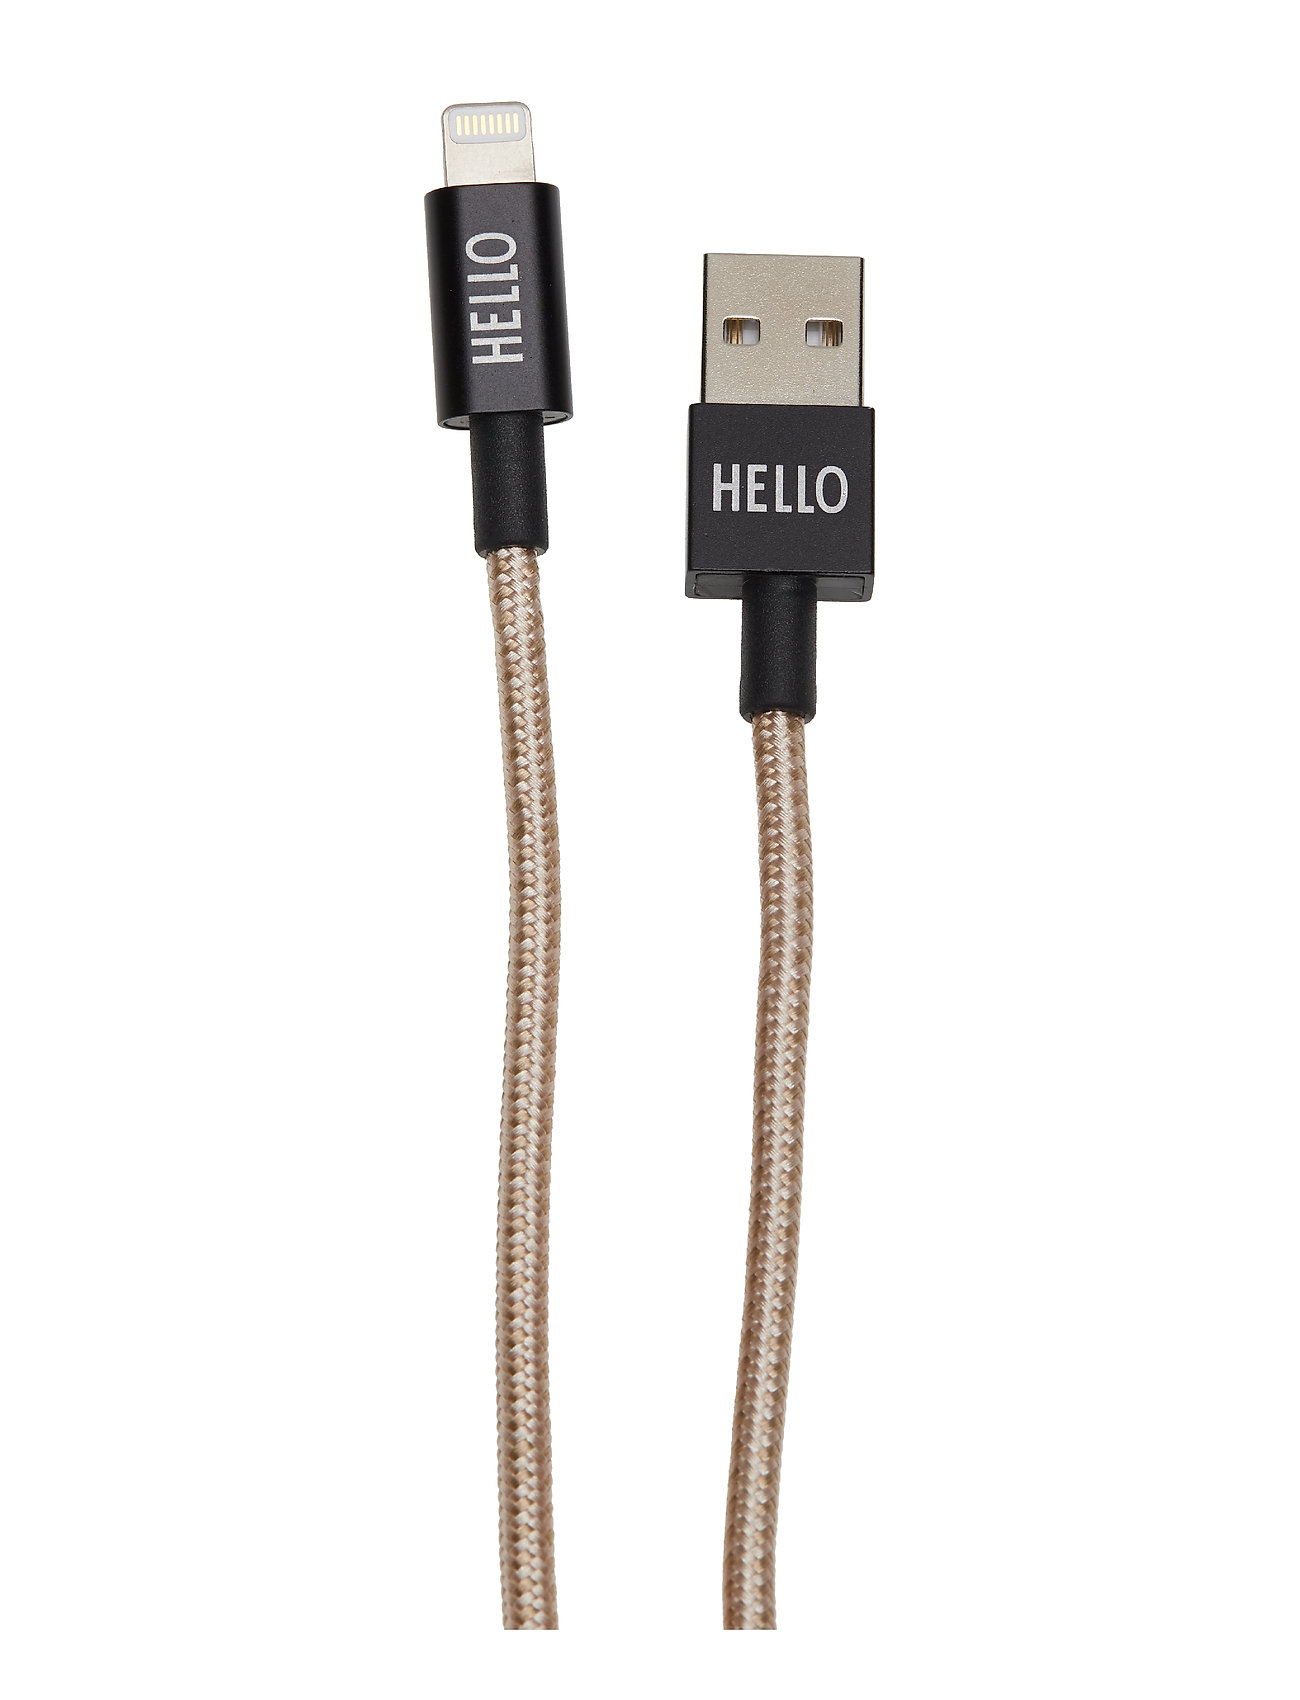 IphonecalbleDesign Letters Letters IphonecalbleDesign Cable Charger Cable Charger Cable IphonecalbleDesign Letters Charger cT3FJl1K